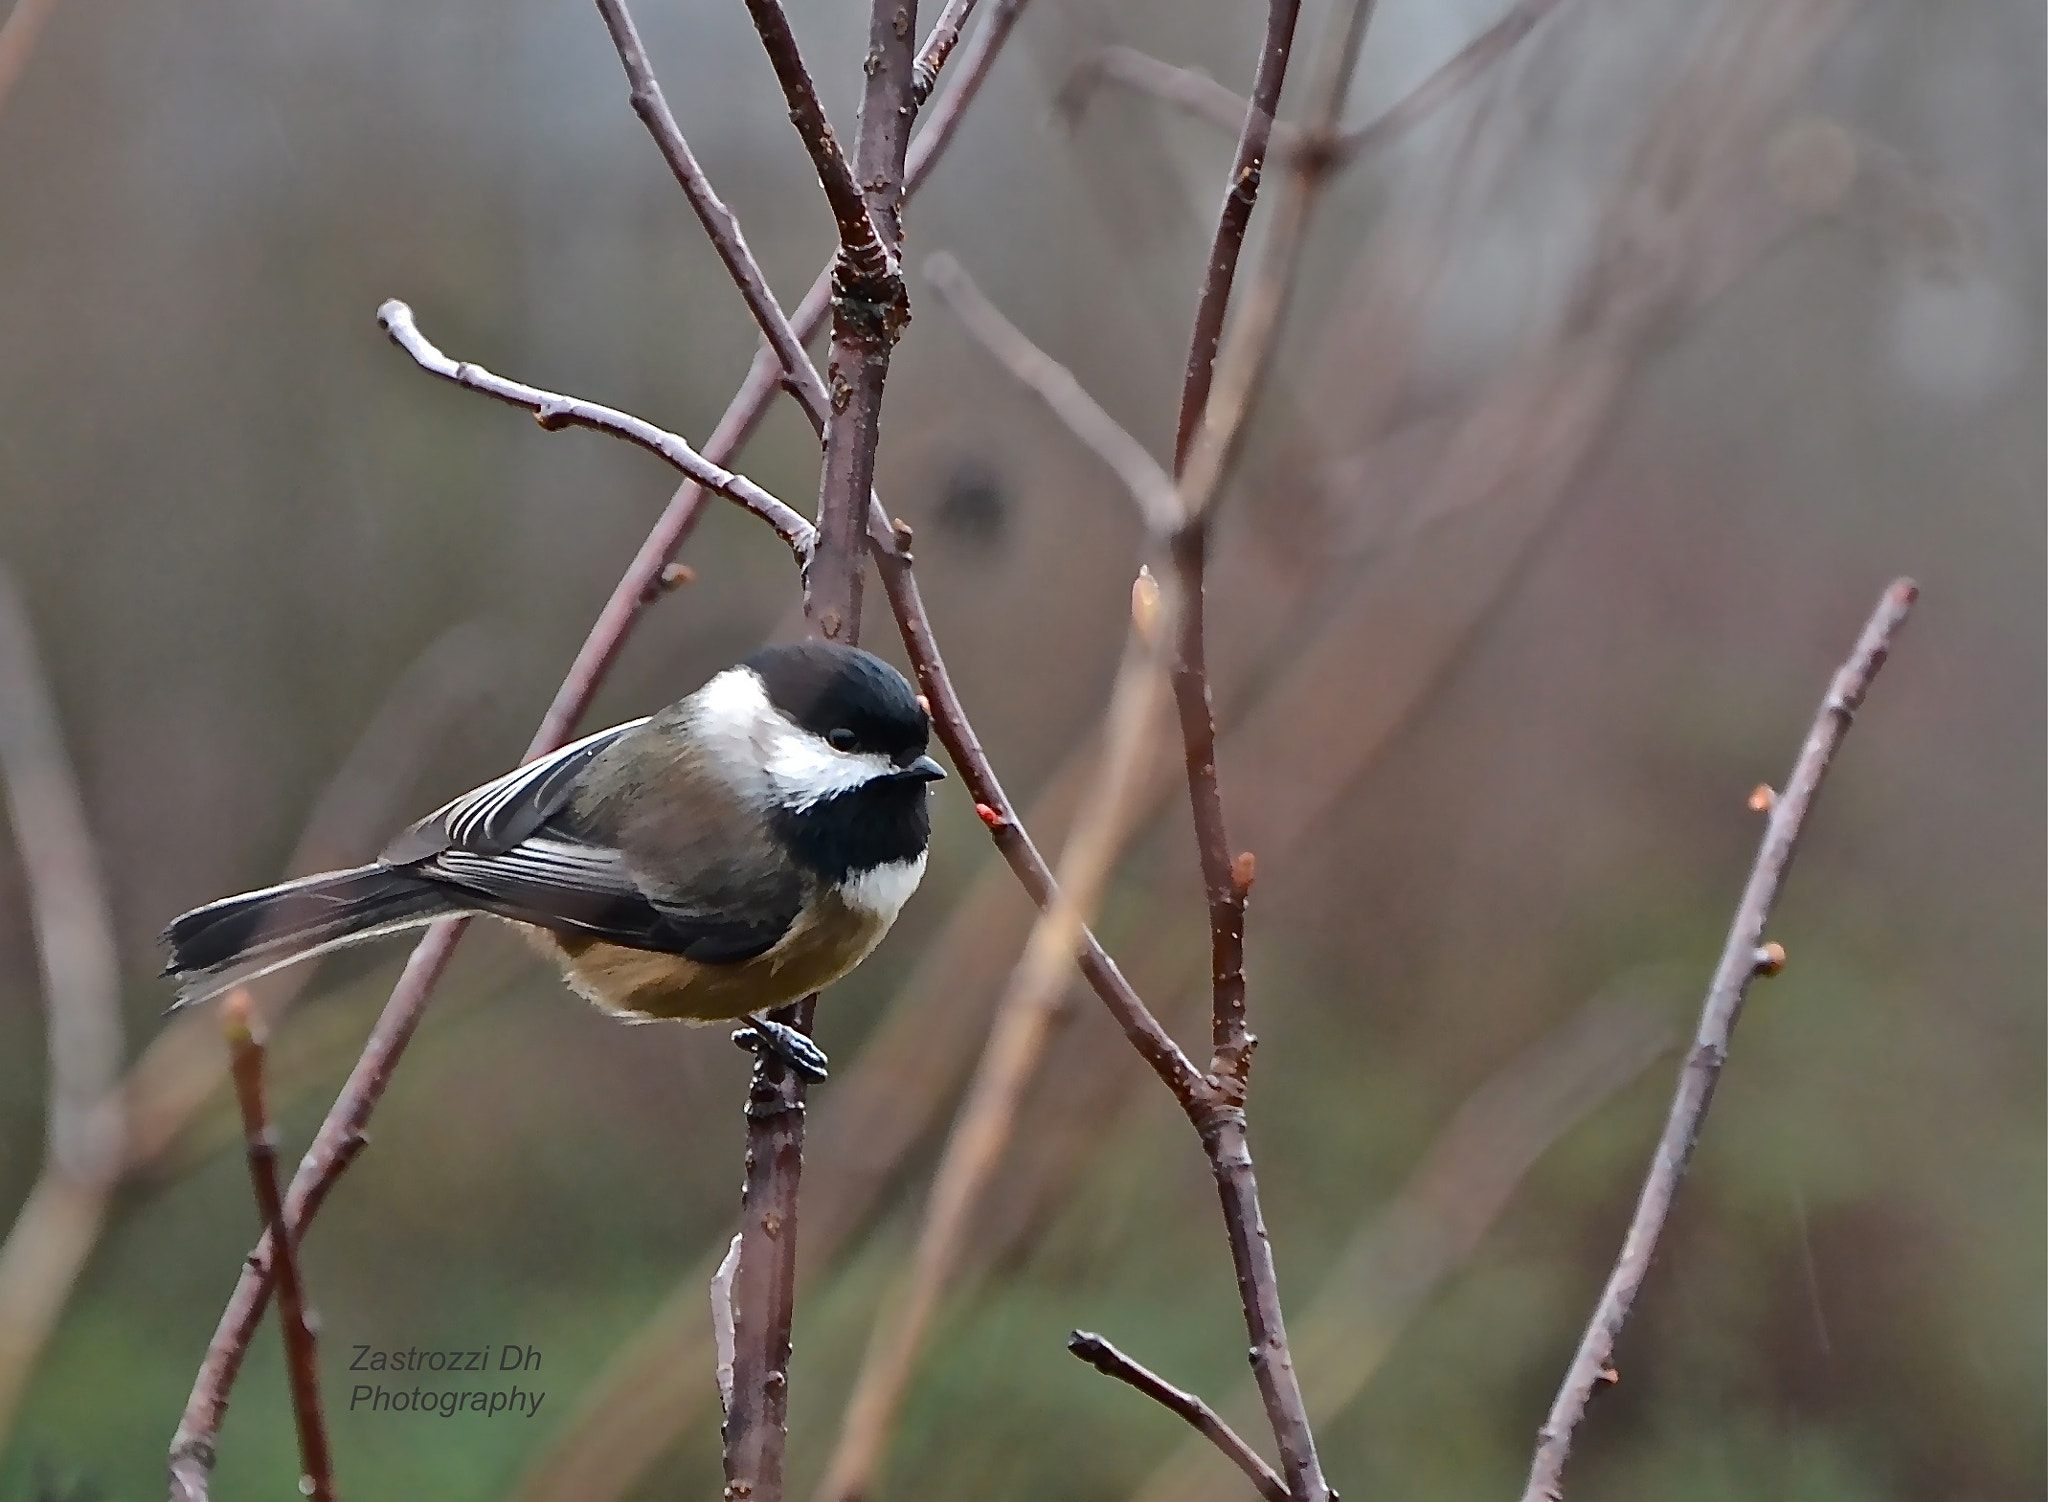 Photograph Chickadee by Zastrozzi Dh on 500px